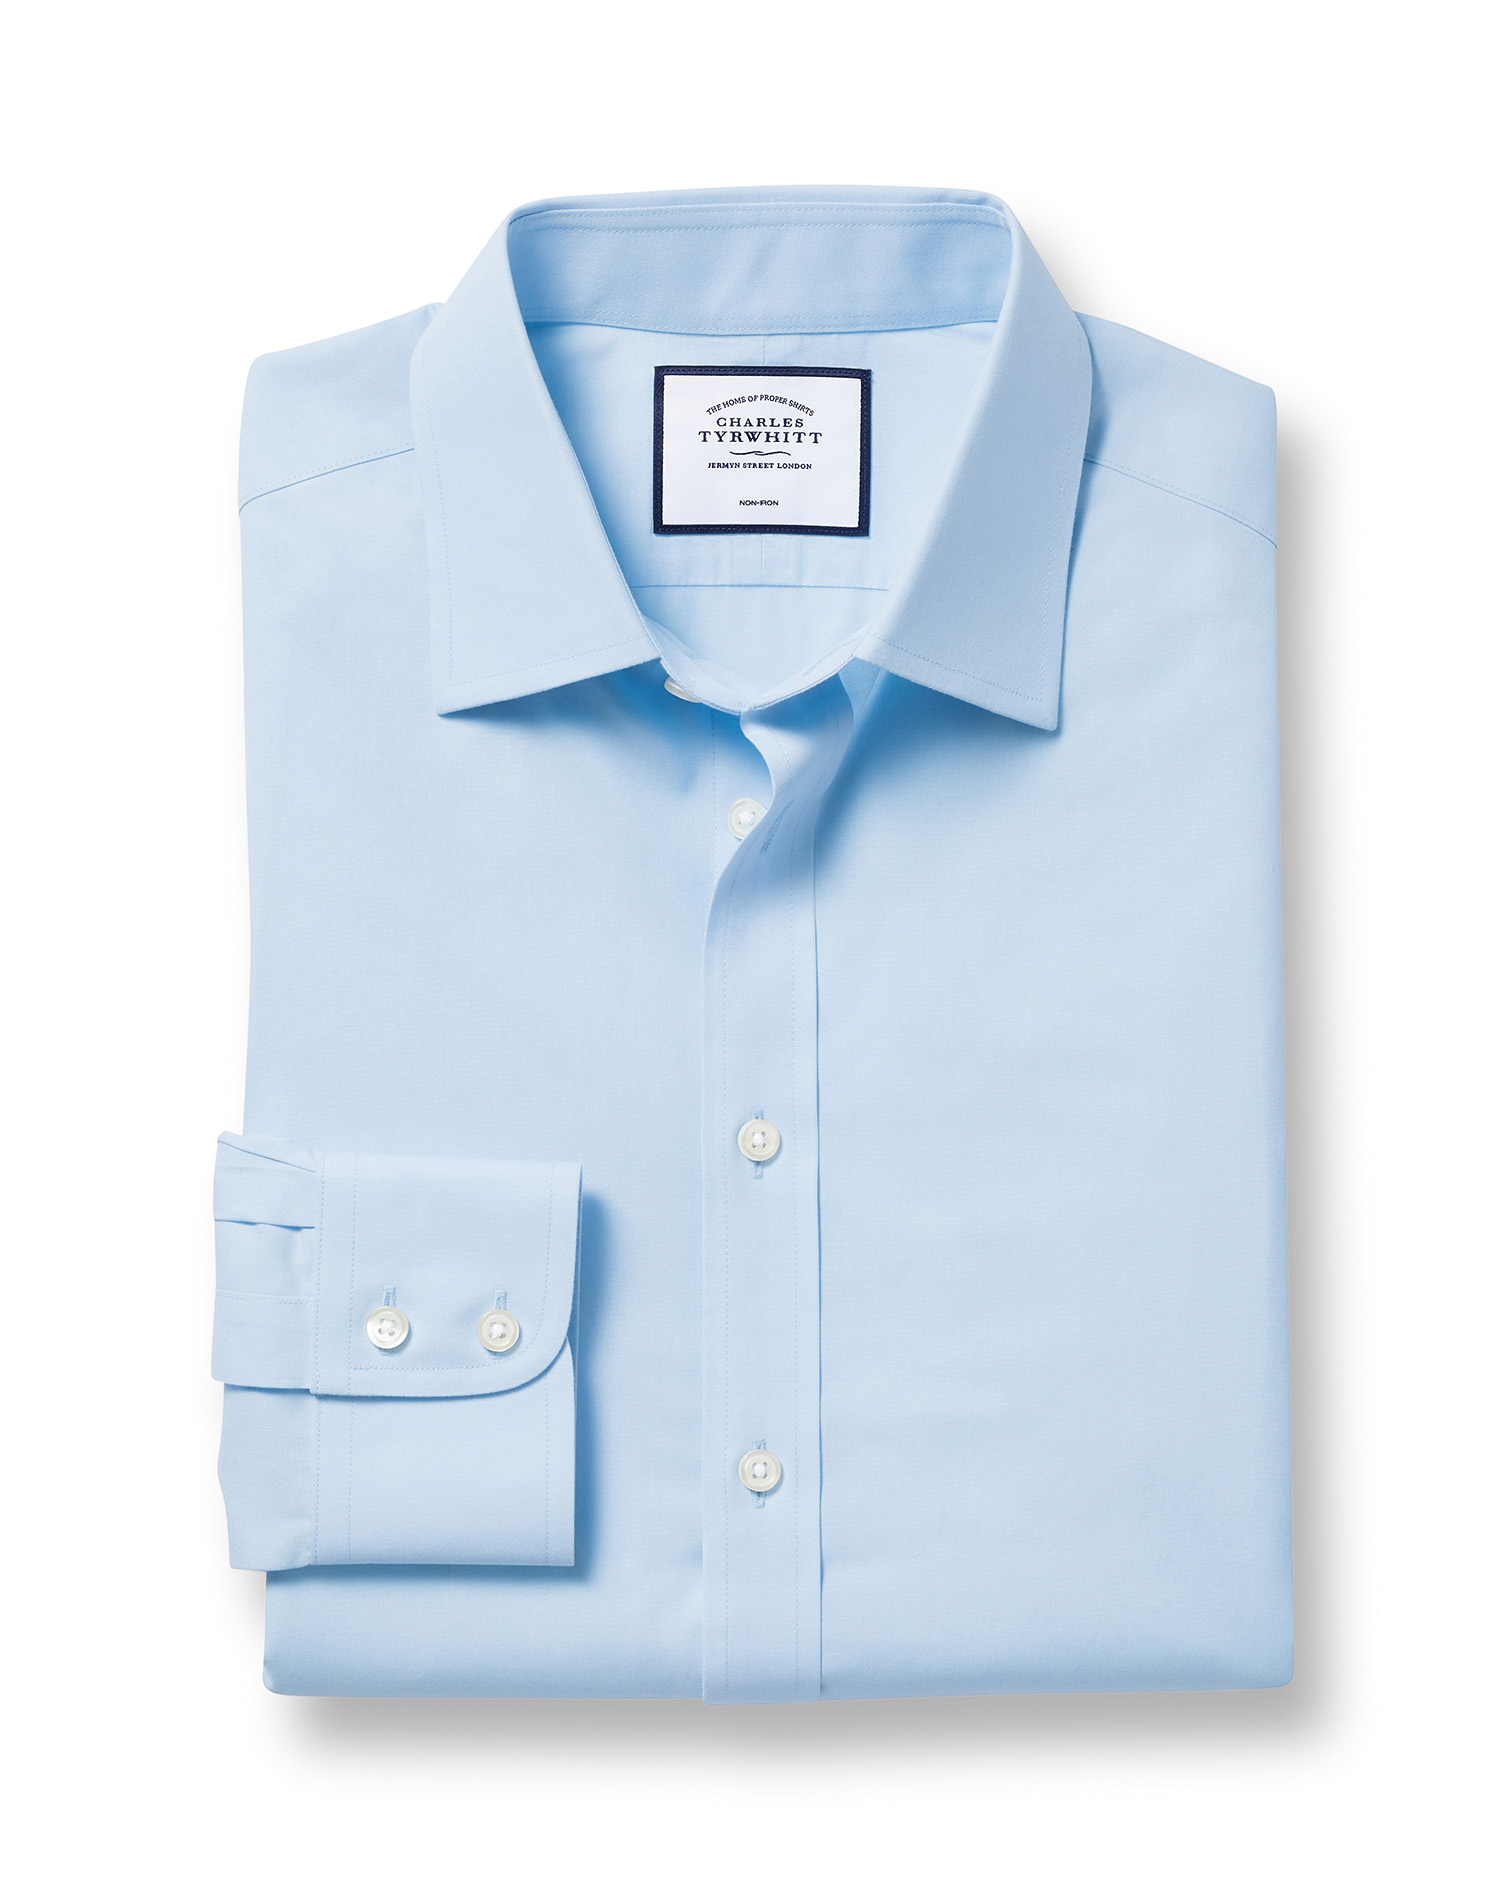 Slim Fit Non-Iron Poplin Sky Blue Cotton Formal Shirt Double Cuff Size 16/34 by Charles Tyrwhitt